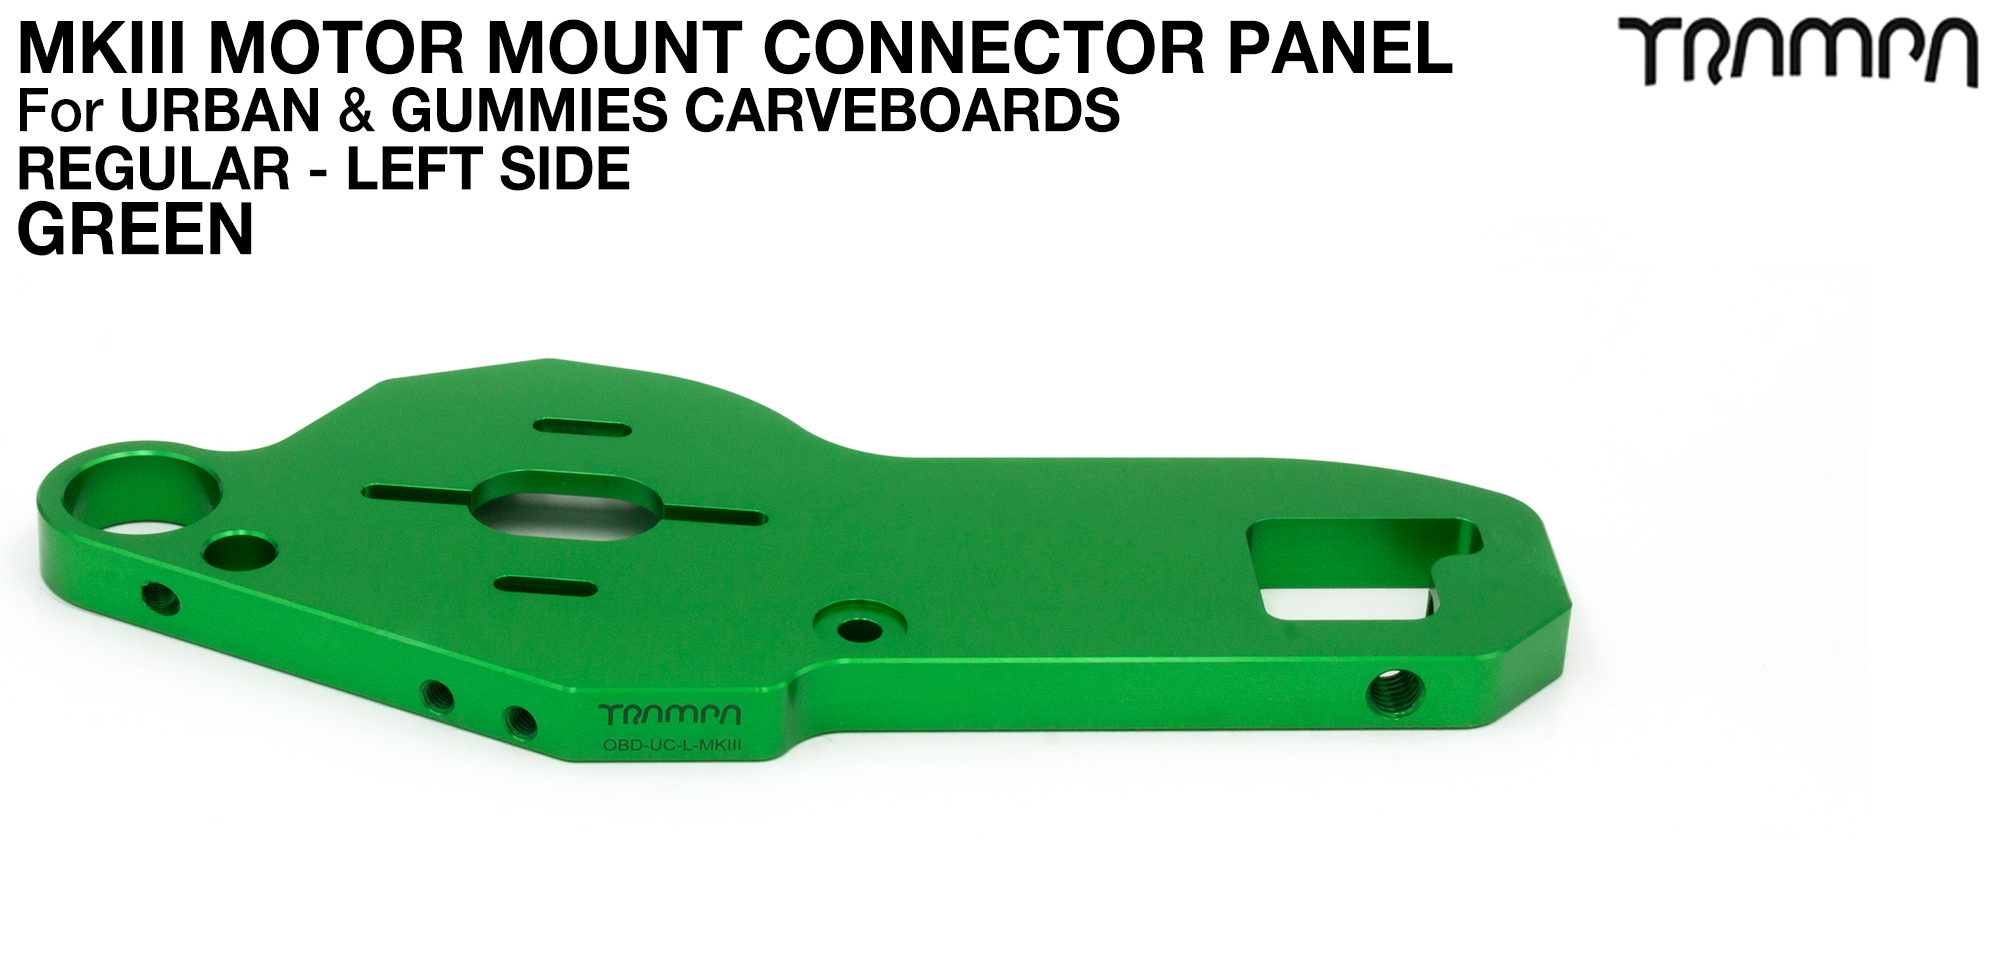 URBAN CARVE Motor Mount - REGULAR GREEN